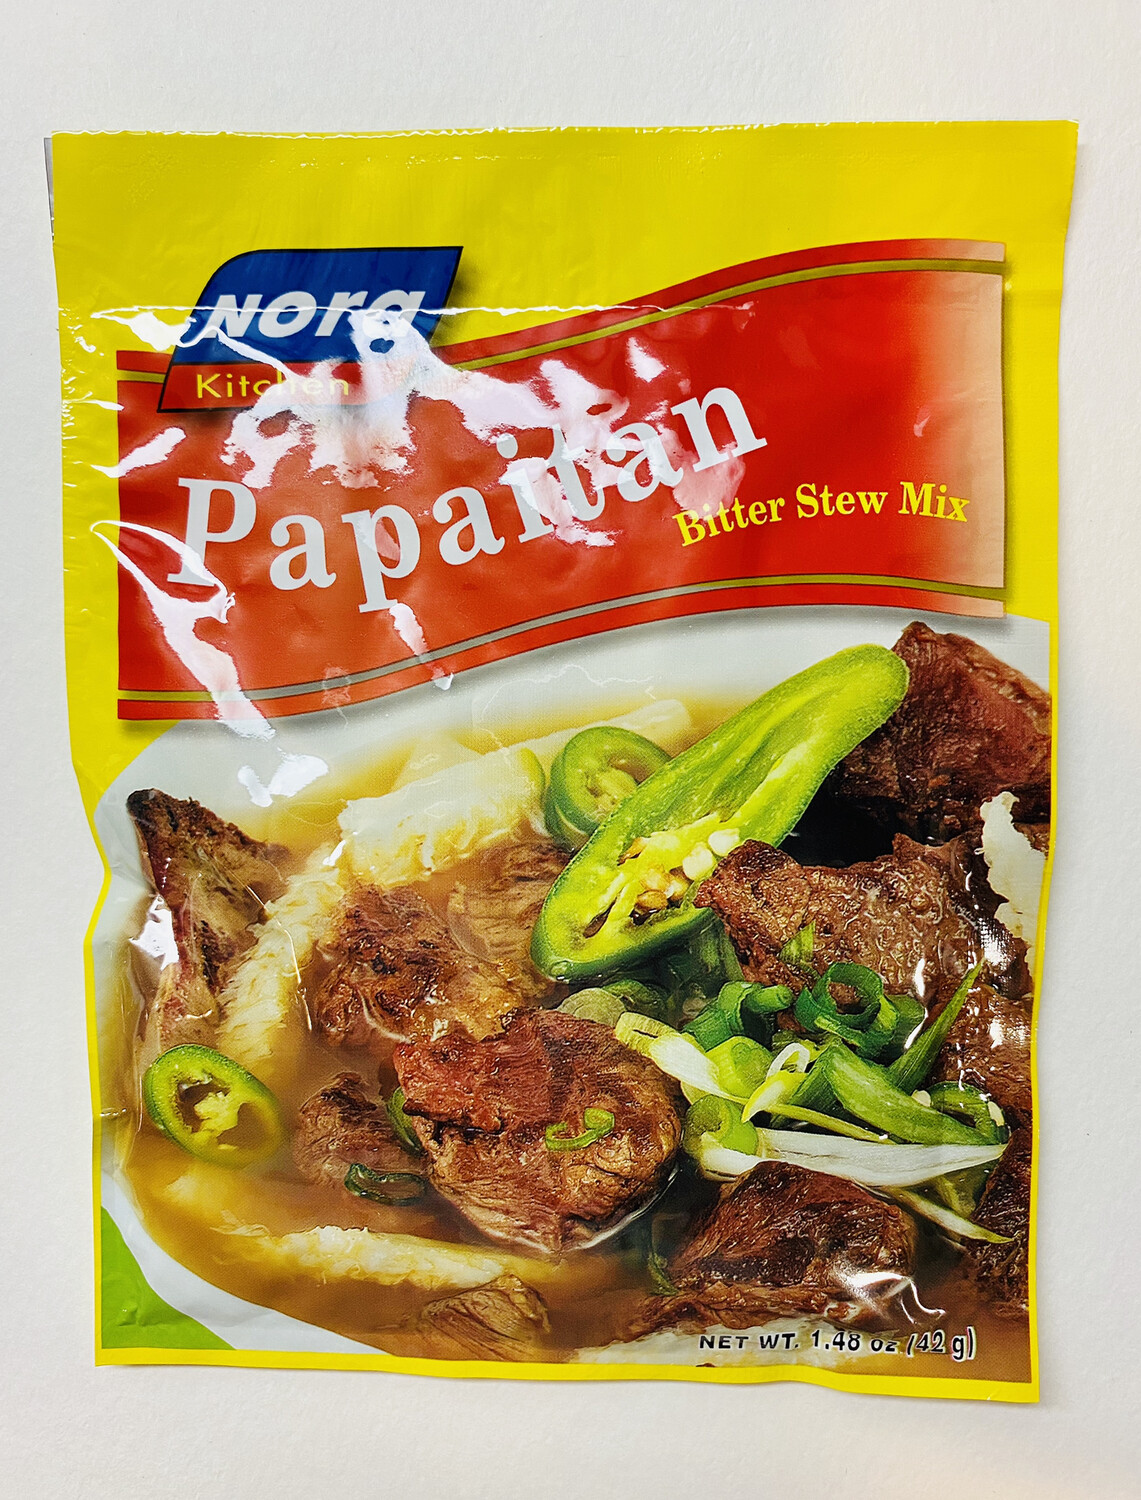 Nora Kitchen - Papaitan Bitter Stew Mix - 42 Grams